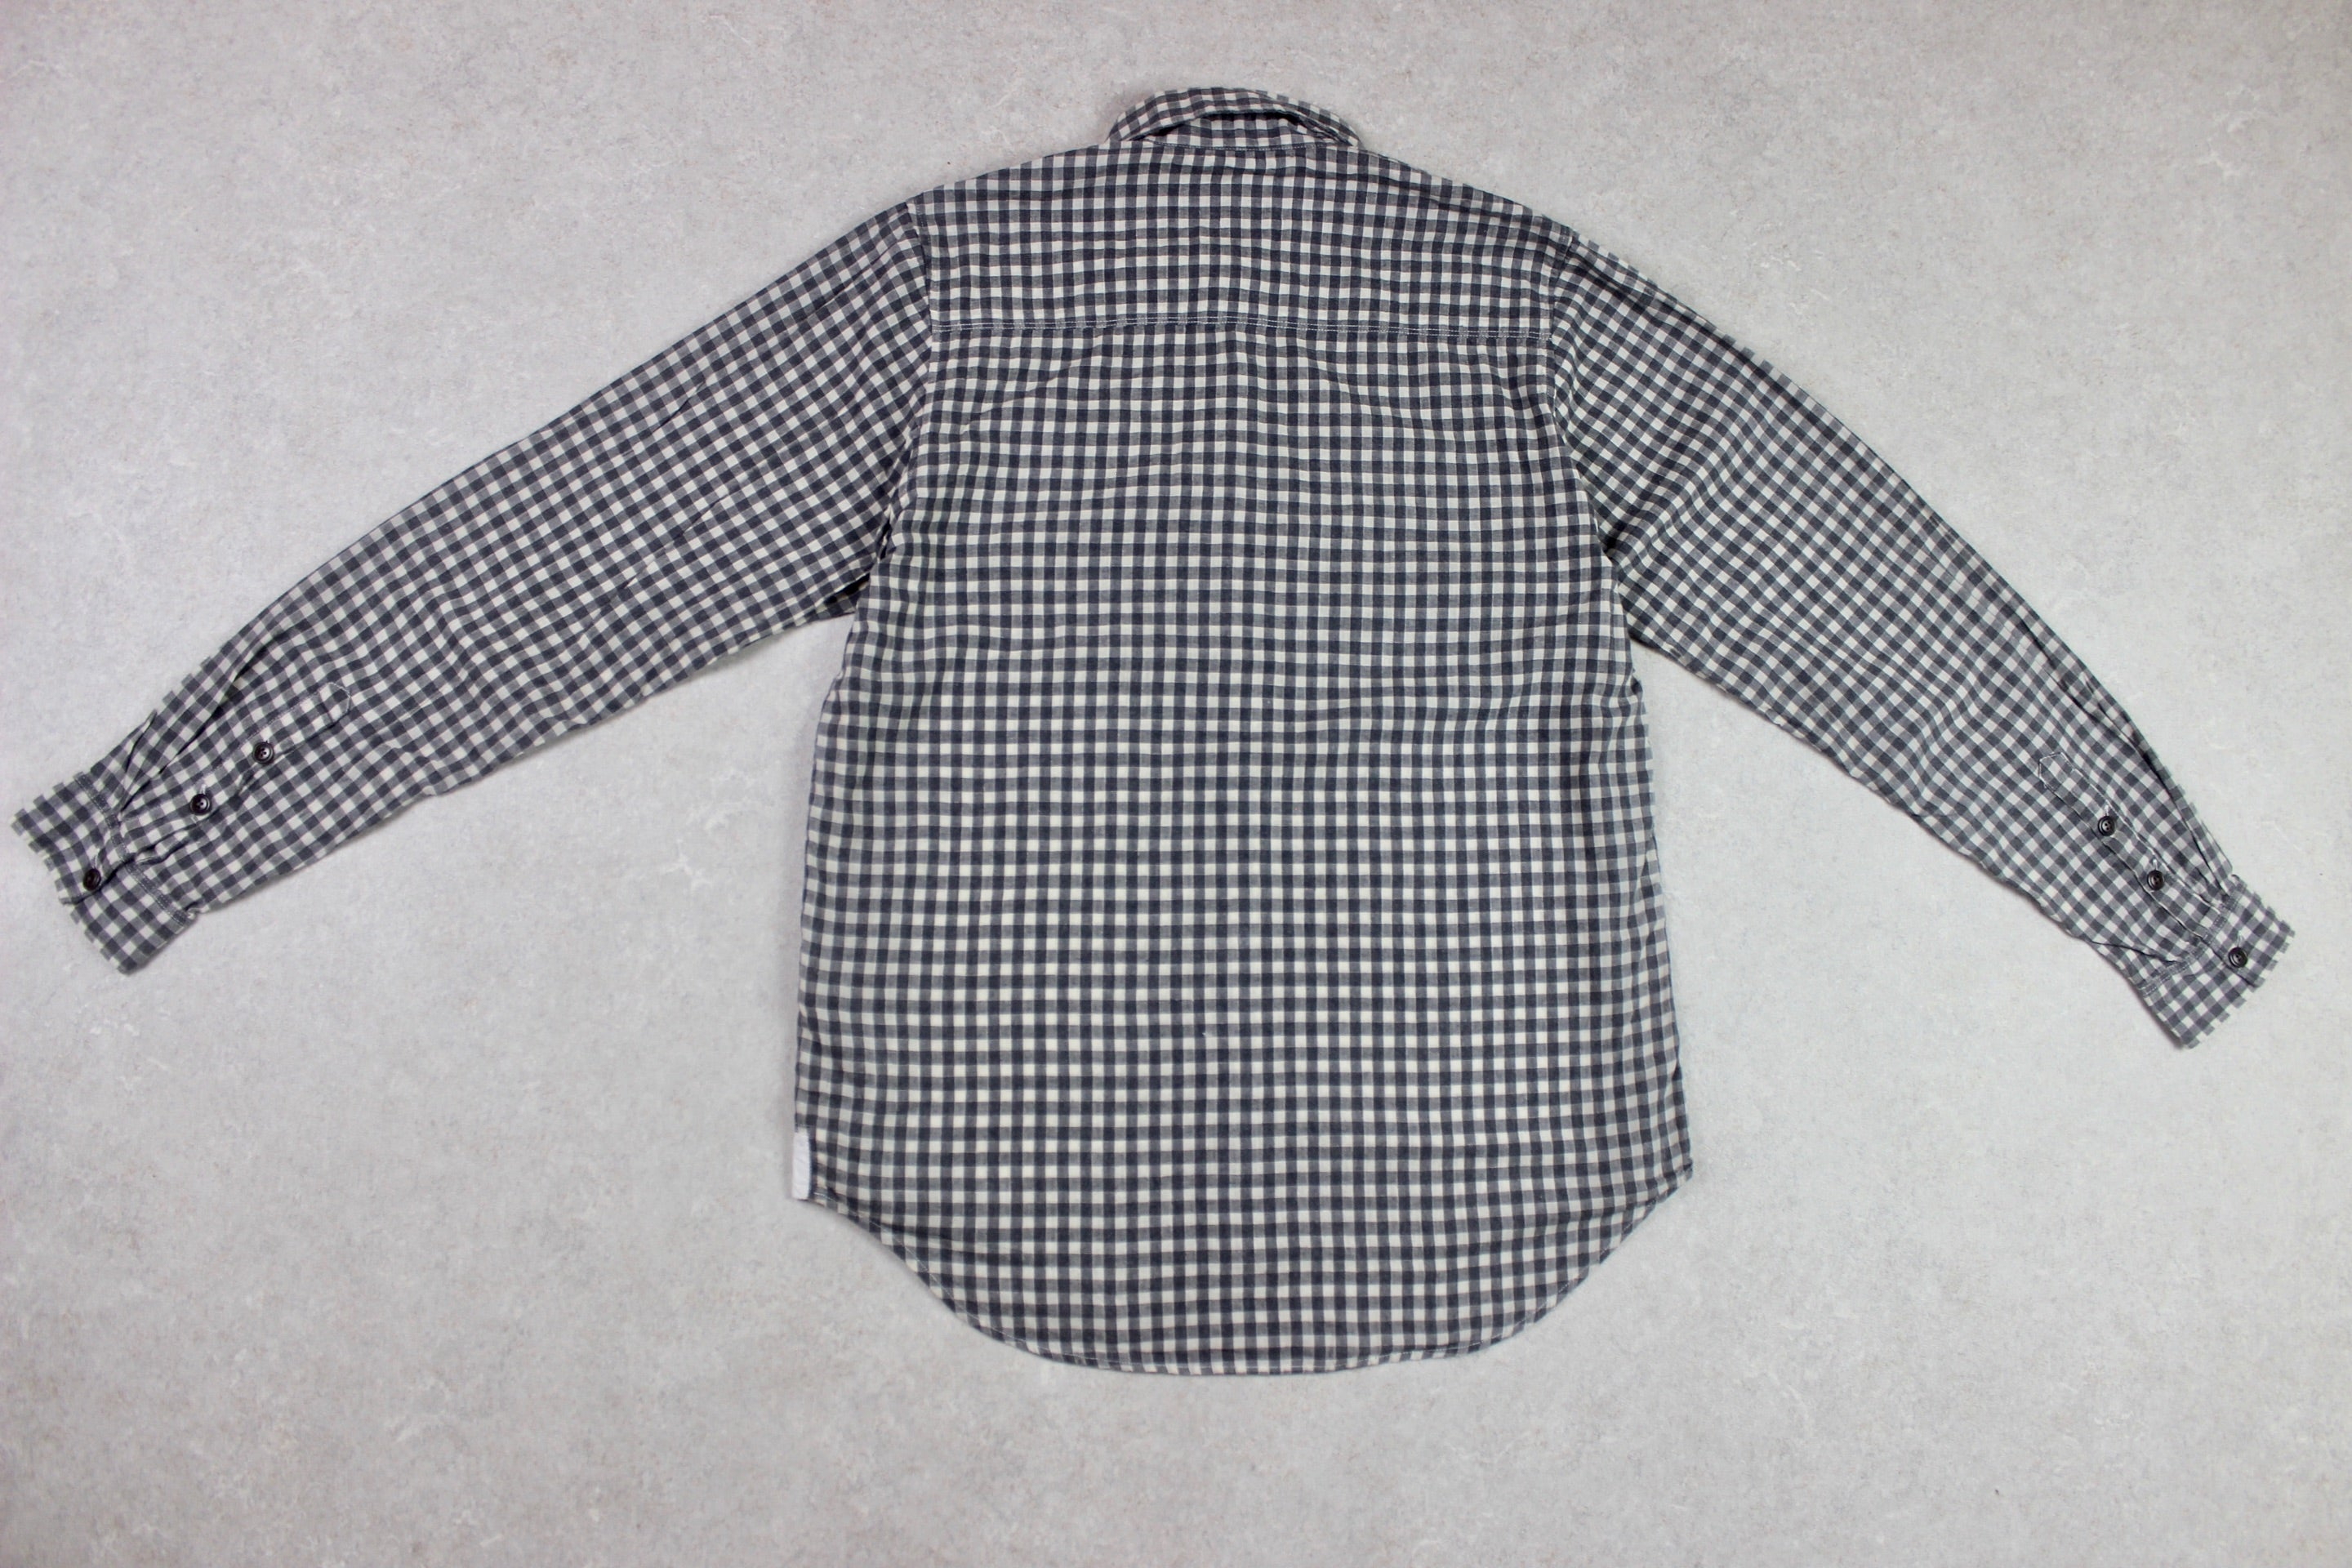 Folk - Shirt - Grey/White Check - 3/Medium